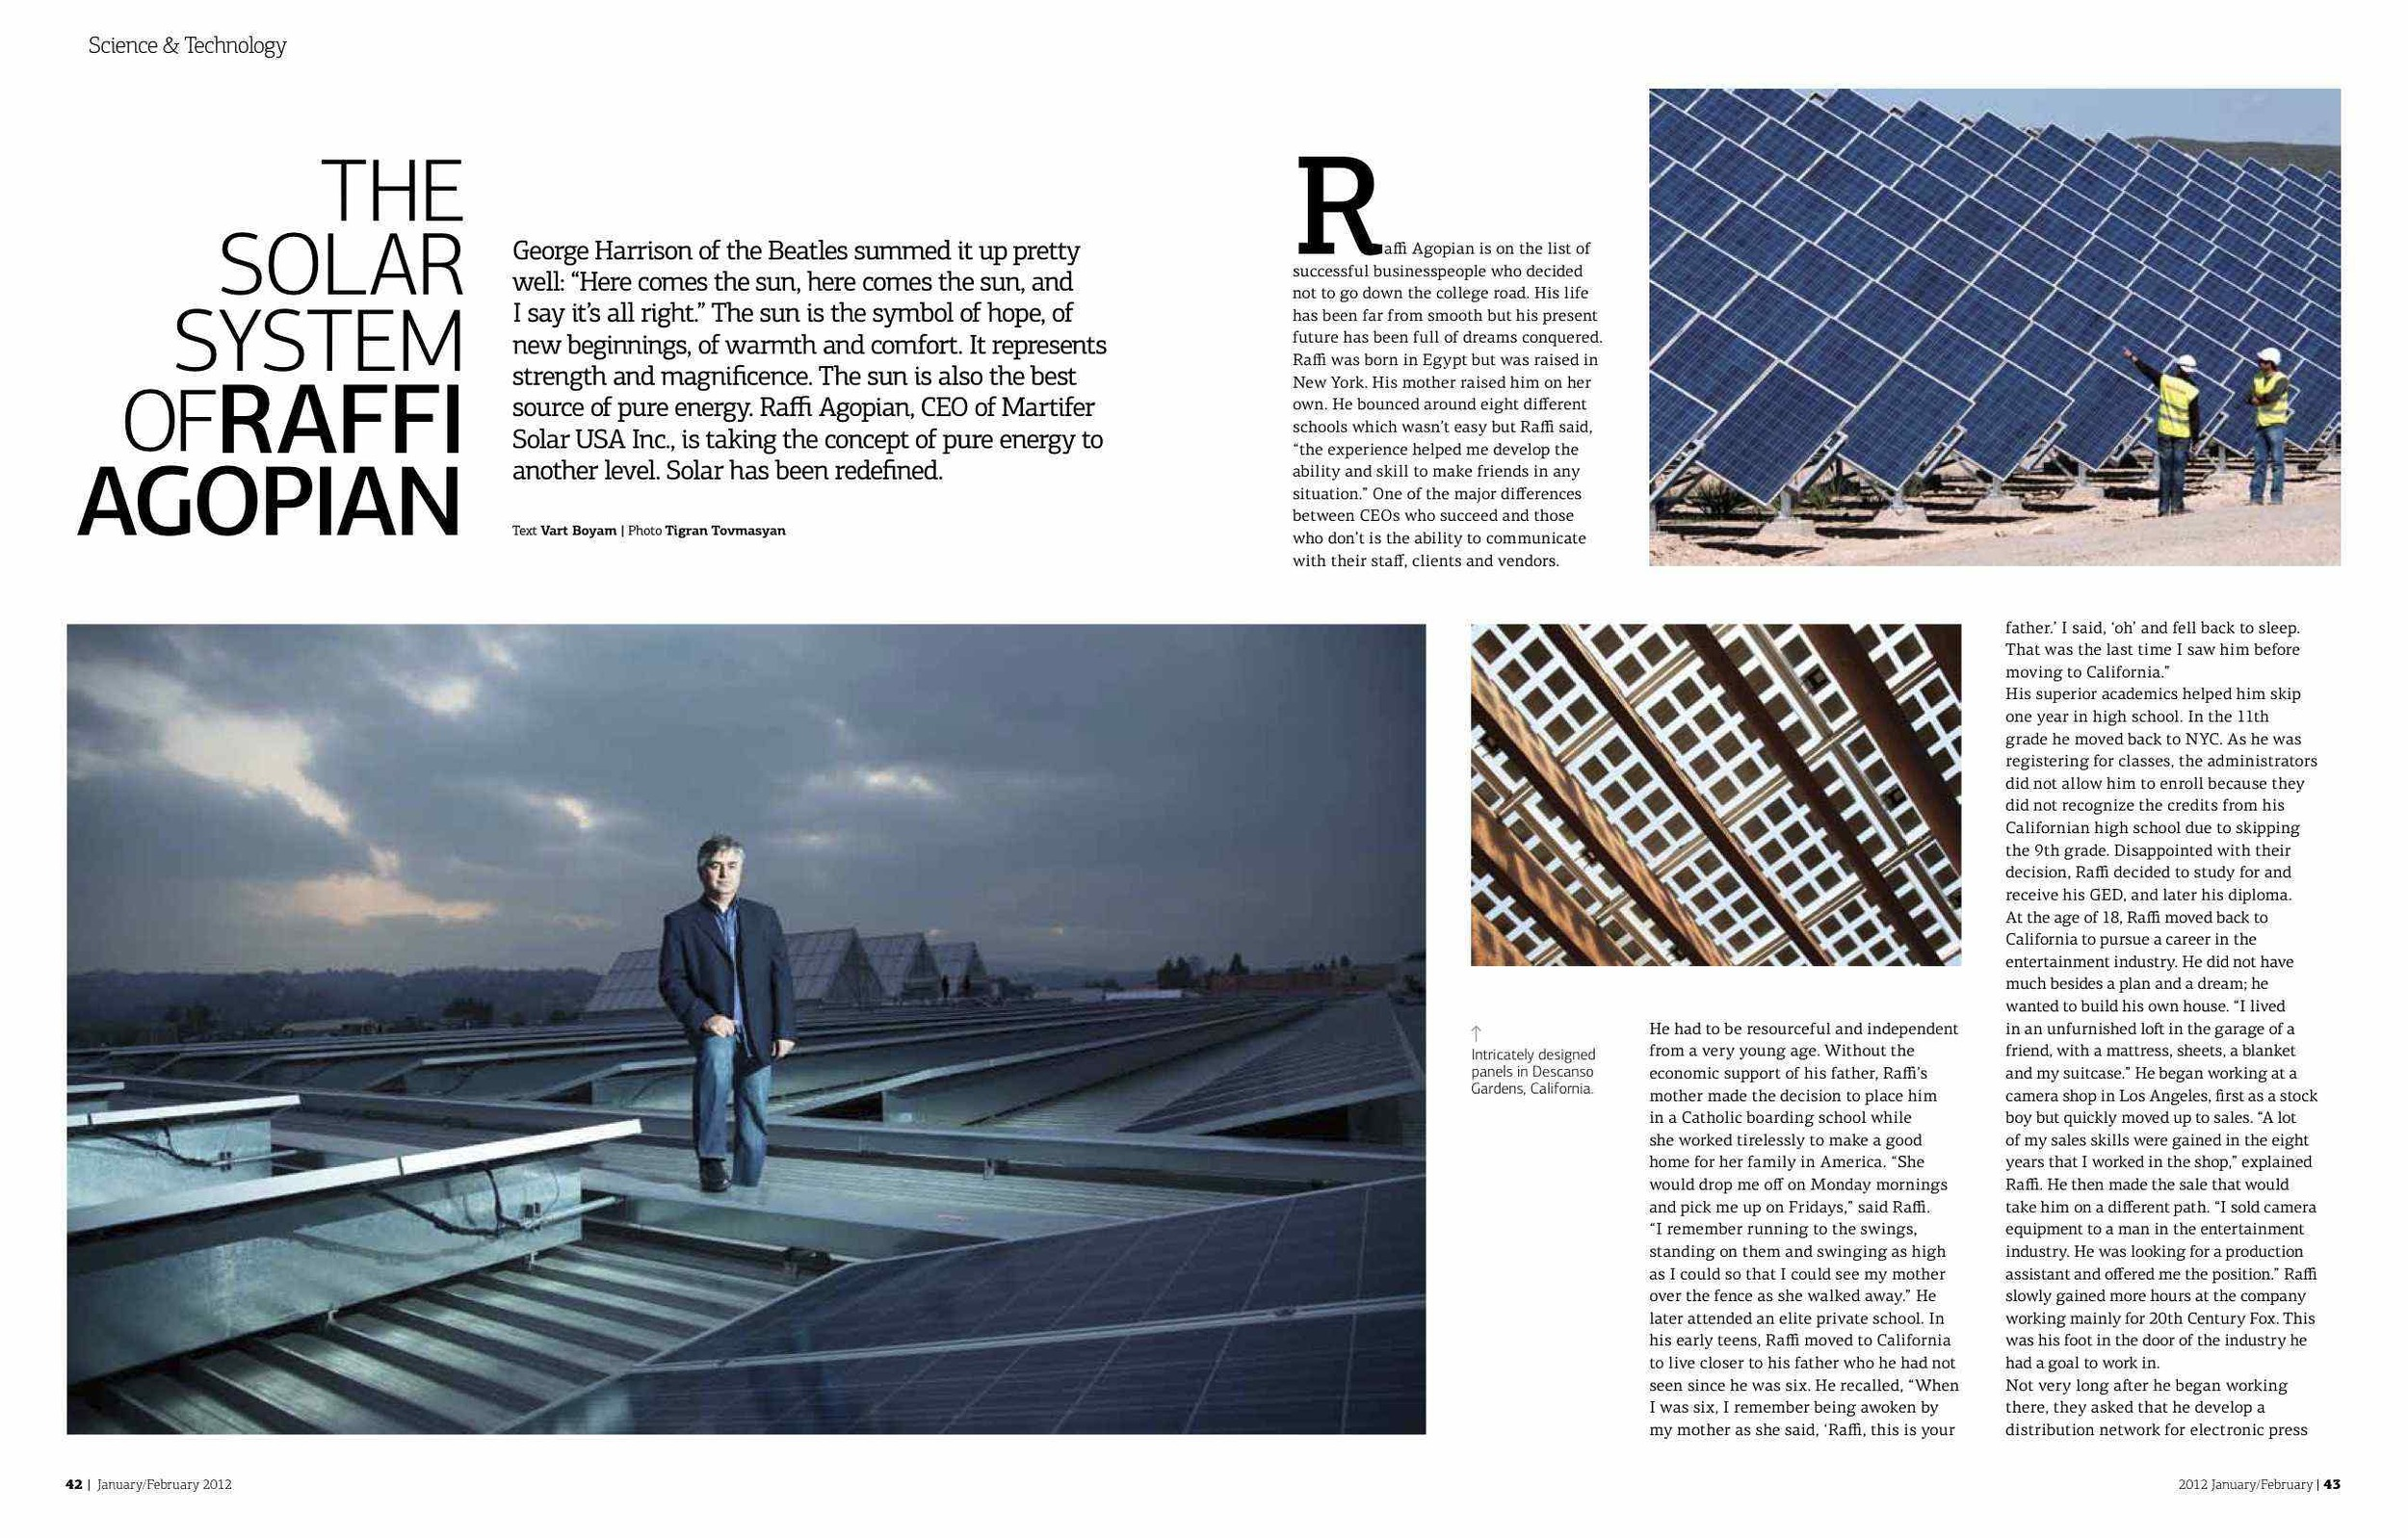 The Solar System of Raffi Agopian     The former CEO of Martifer Solar U.S.A. Inc., is redefining    solar power by expanding the scale of its operations and    adding innovative technology